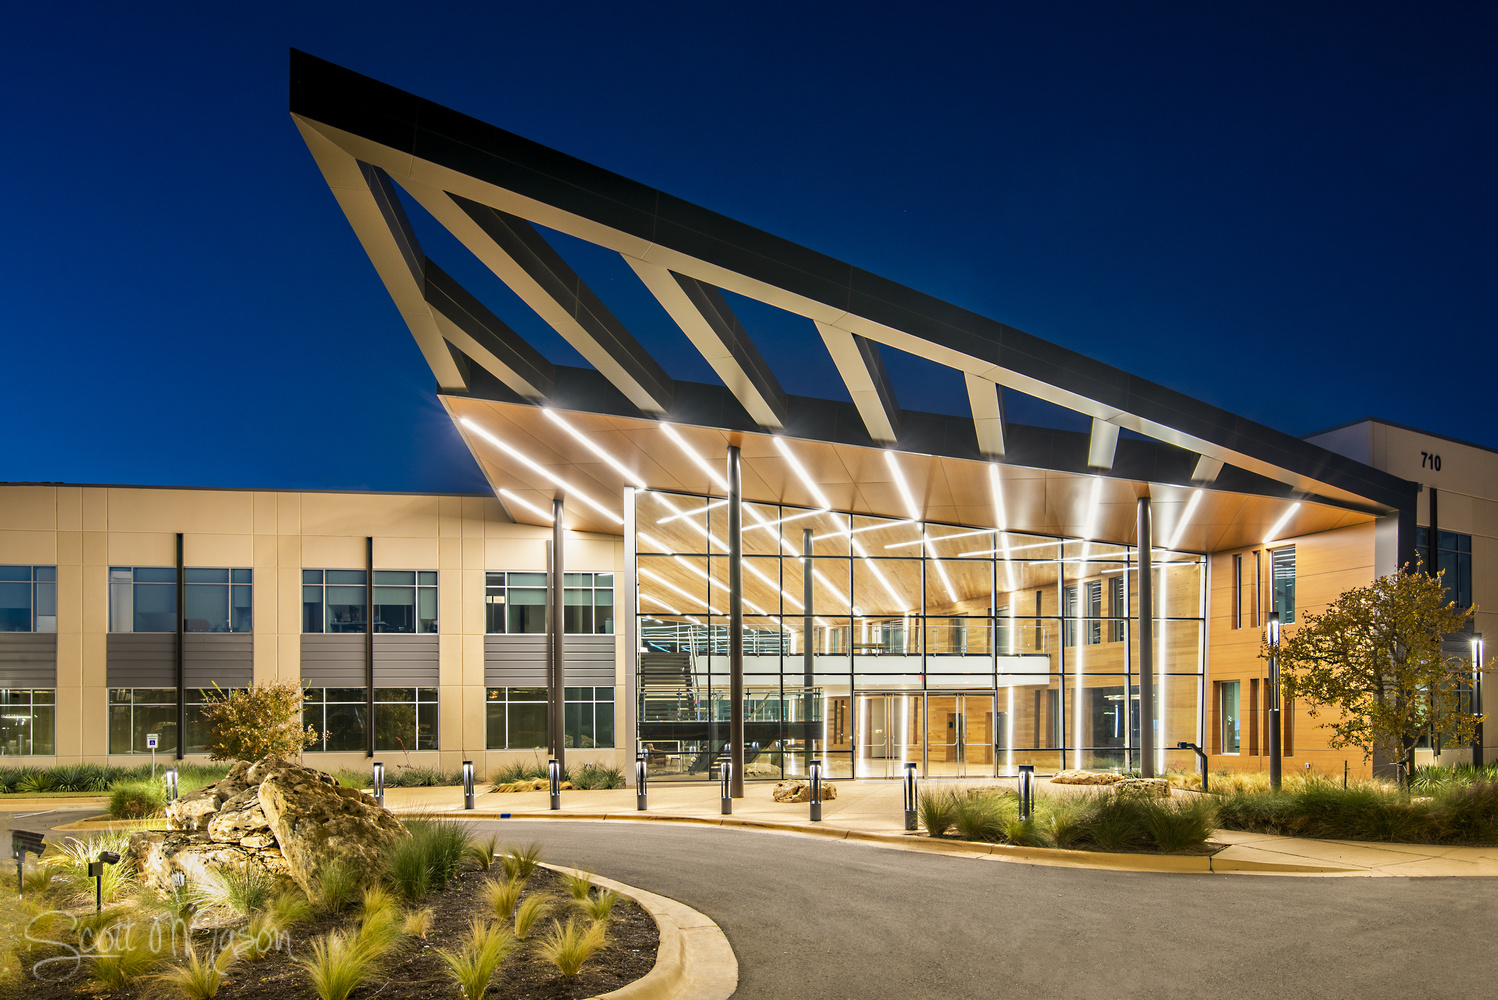 an exterior architectural photo of an office at twilight